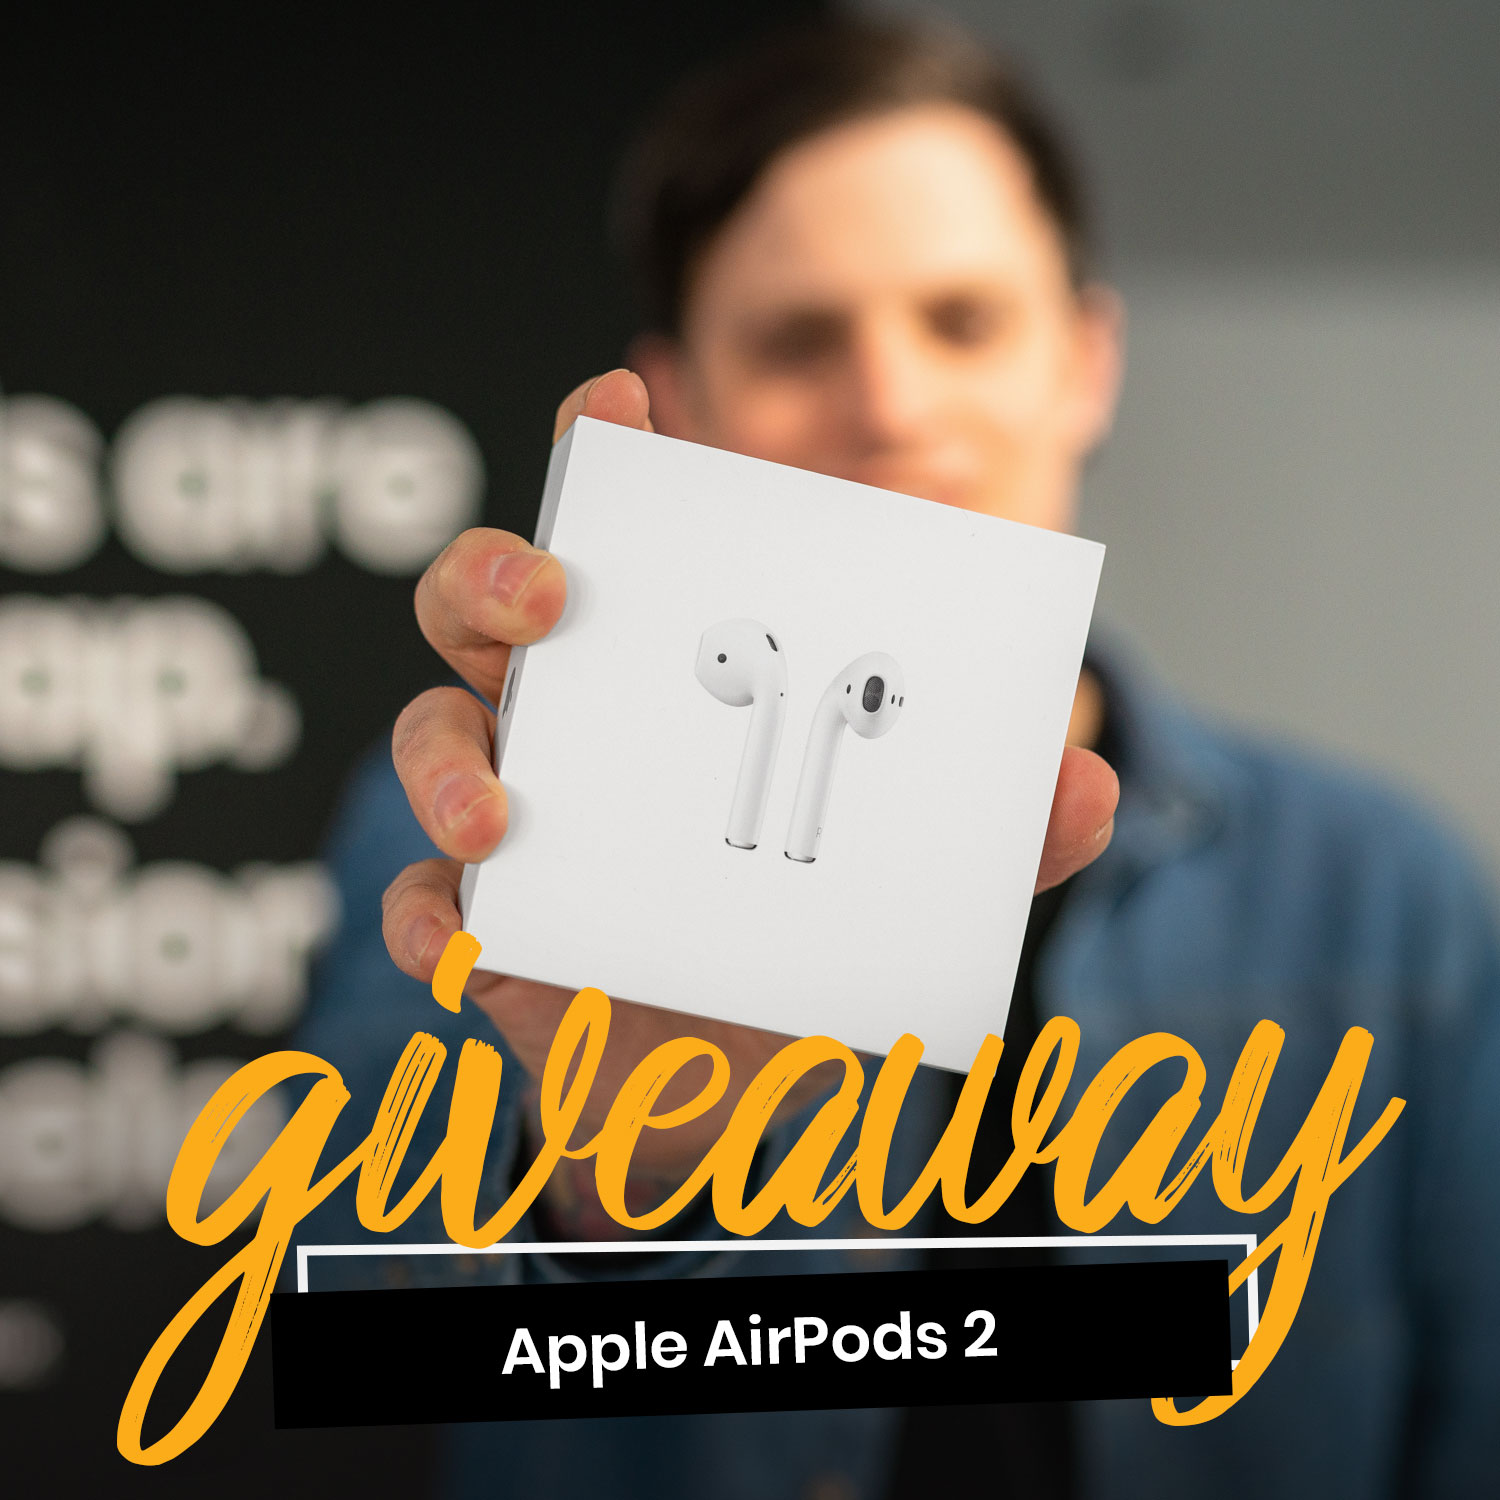 Giveaway - Apple AirPods 2